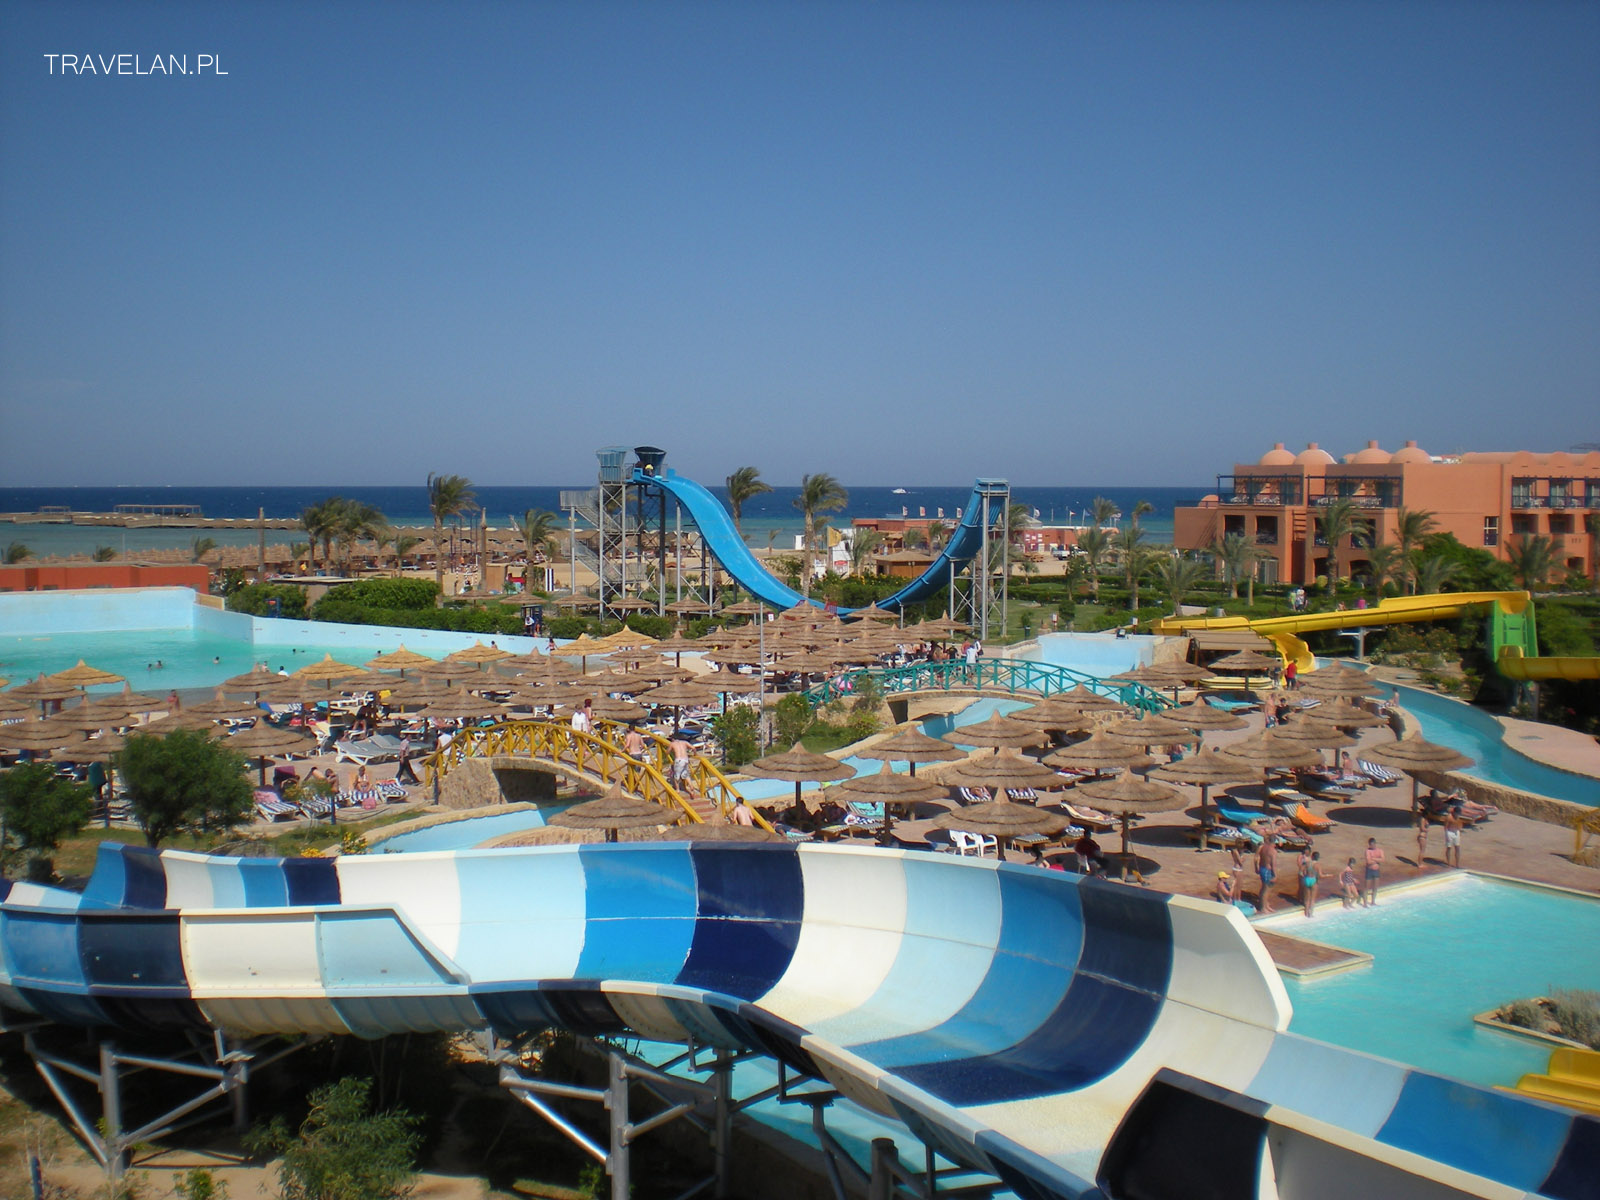 Titanic Beach - Aquapark